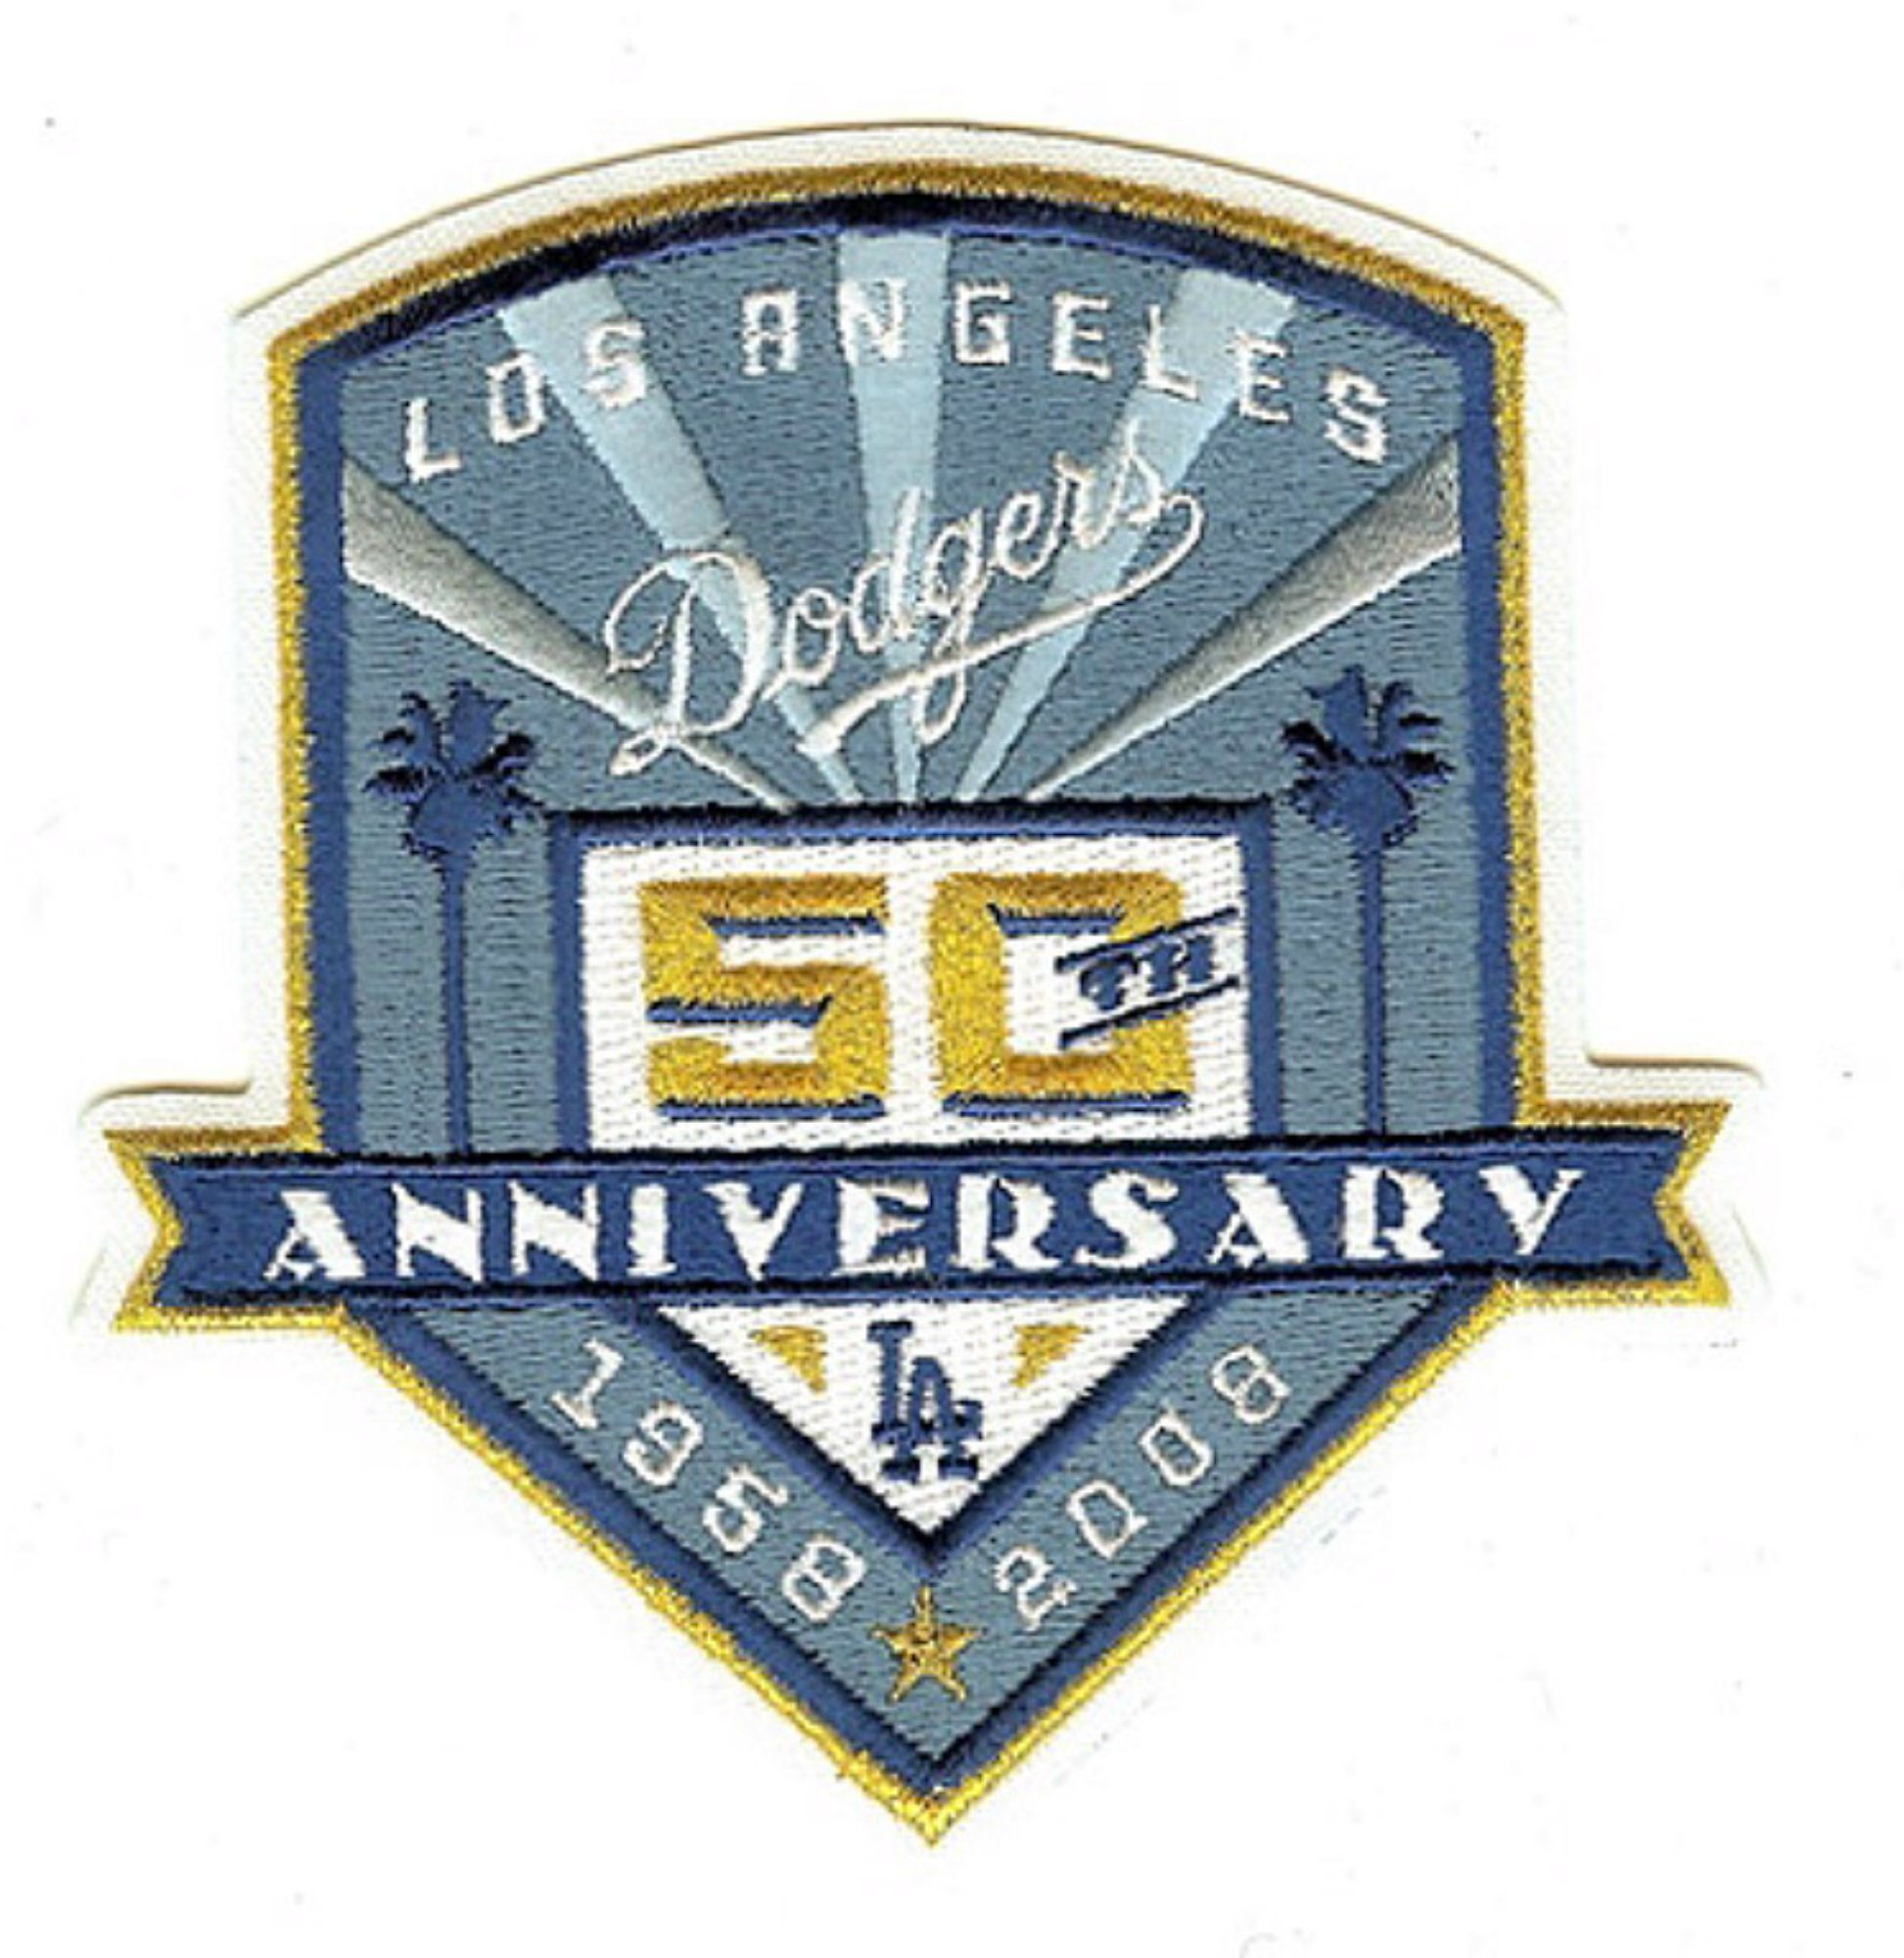 Los Angeles Dodgers 50th Anniversary Athletics logo